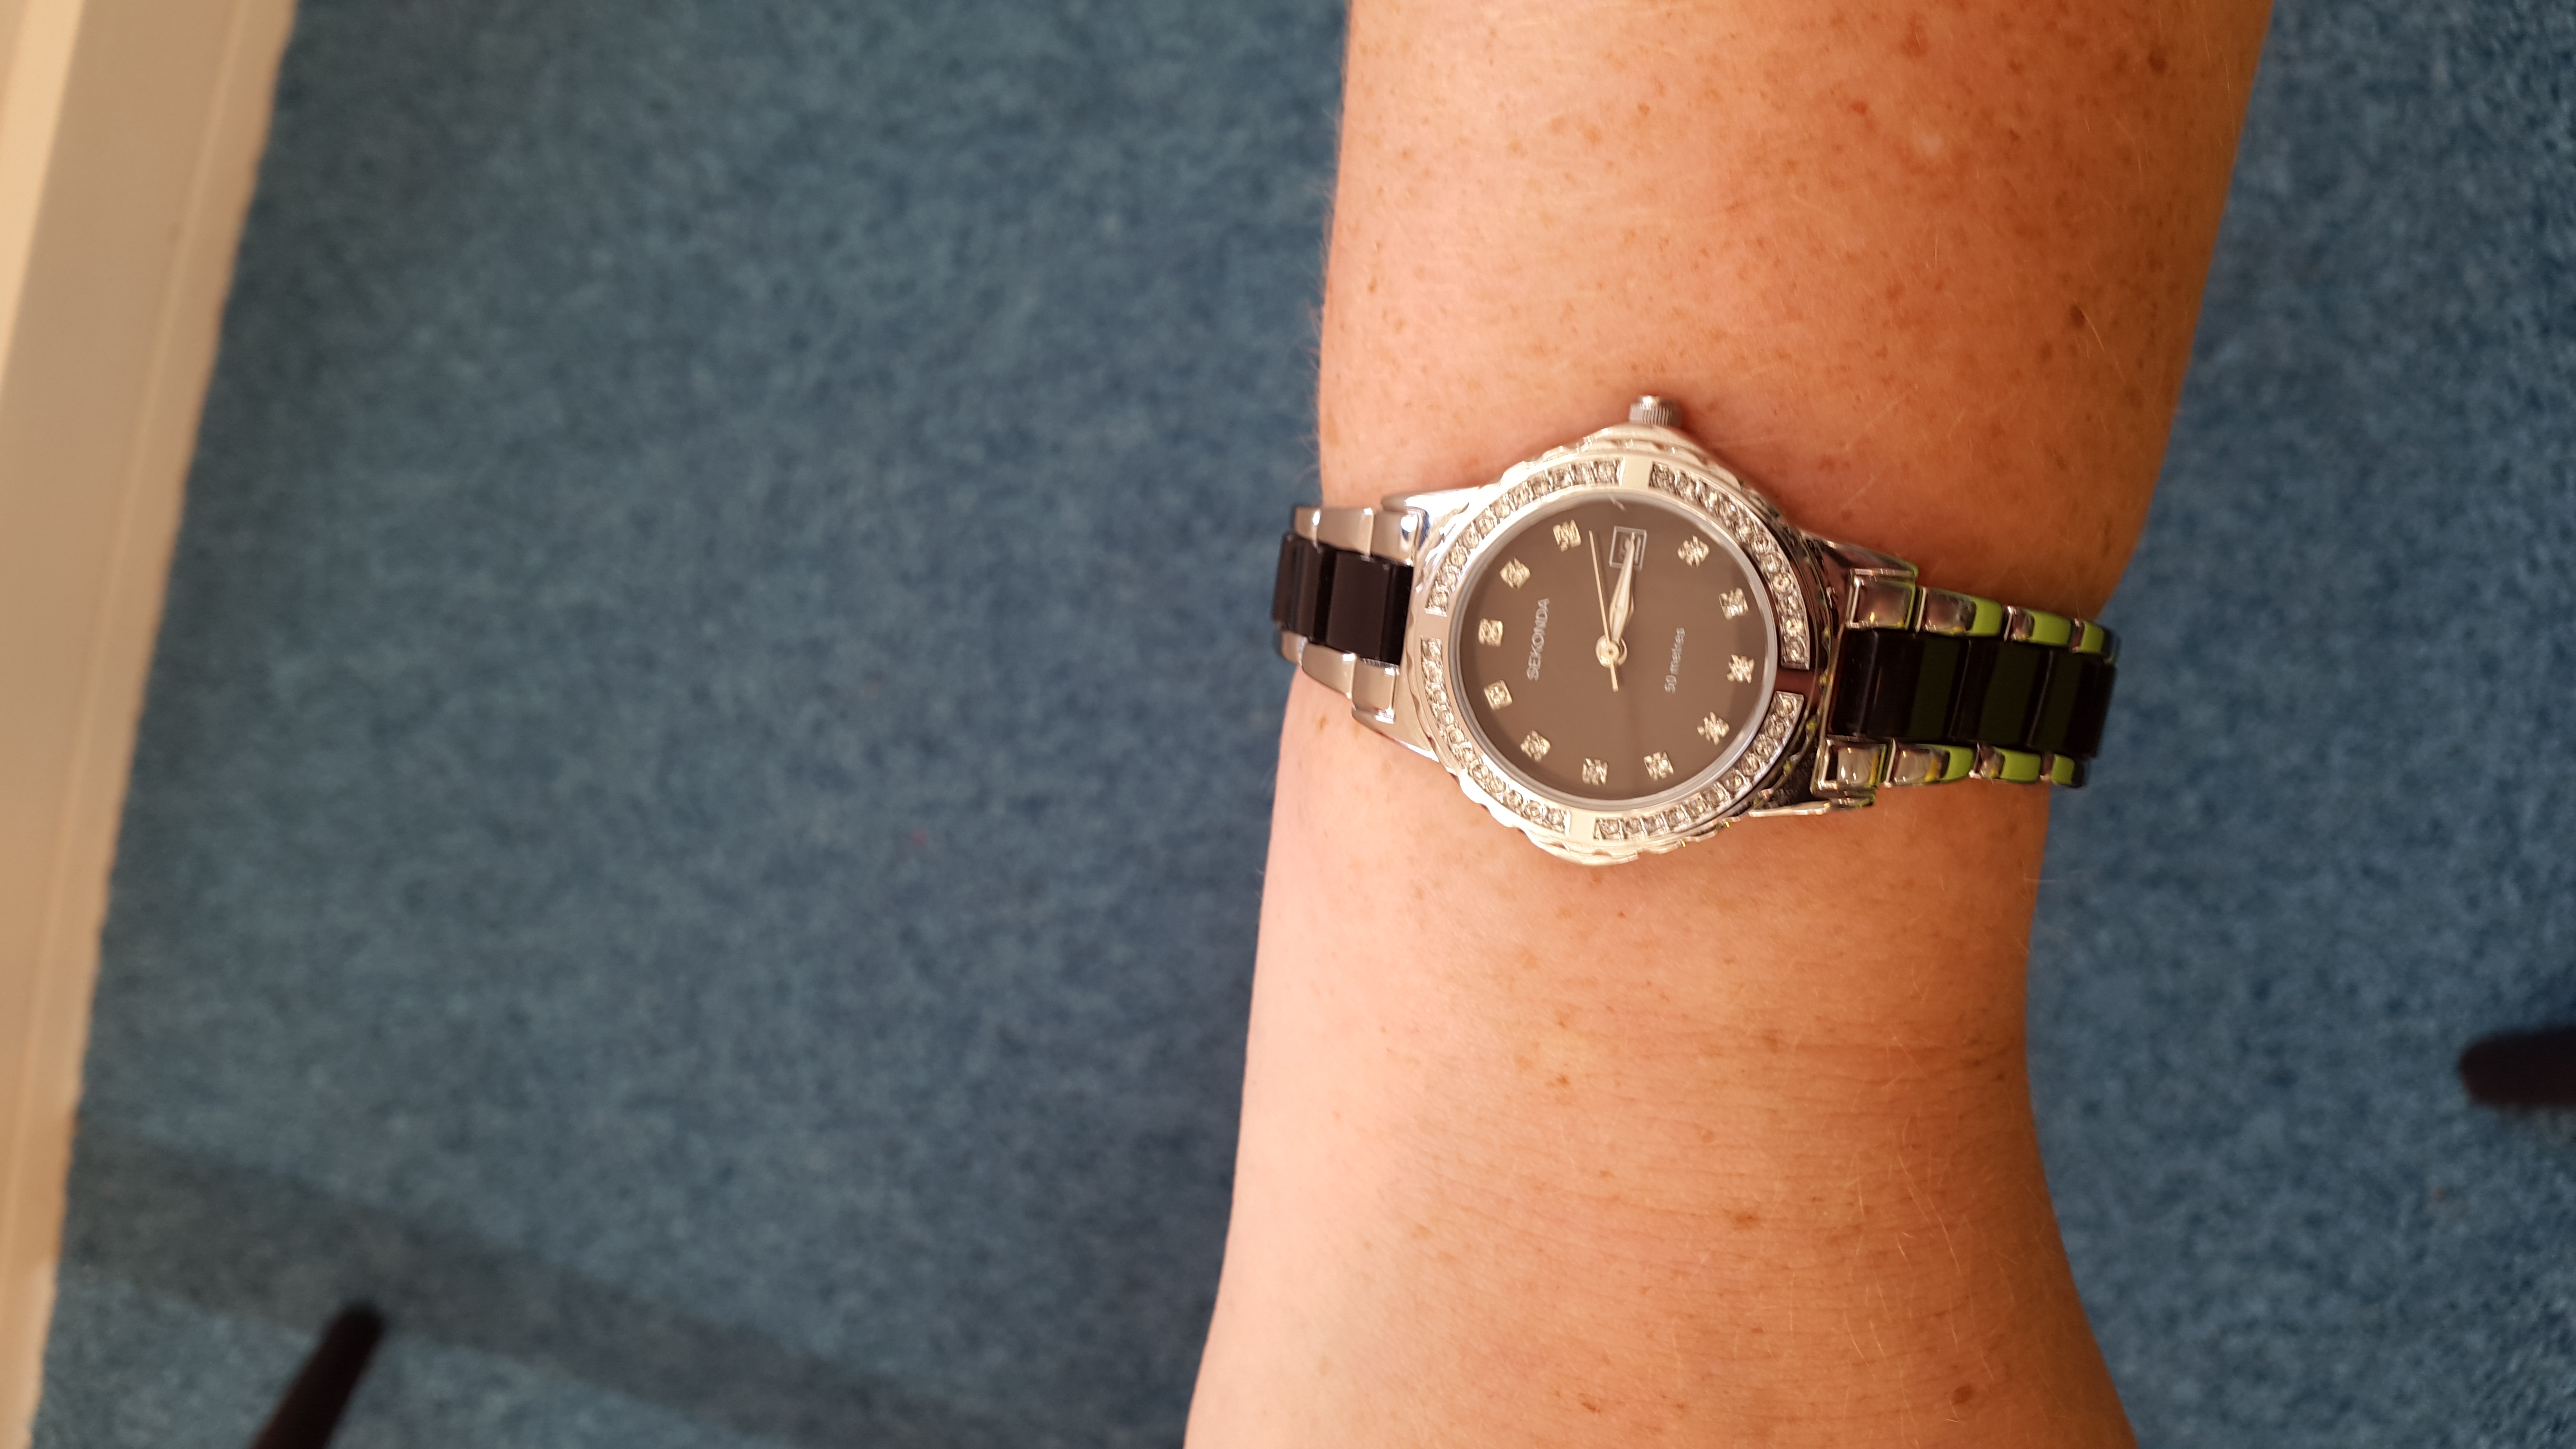 a2aa46aa92a5 Very happy with the watch i recieved. Good quality. And arrived on time.  Looks great on+!!